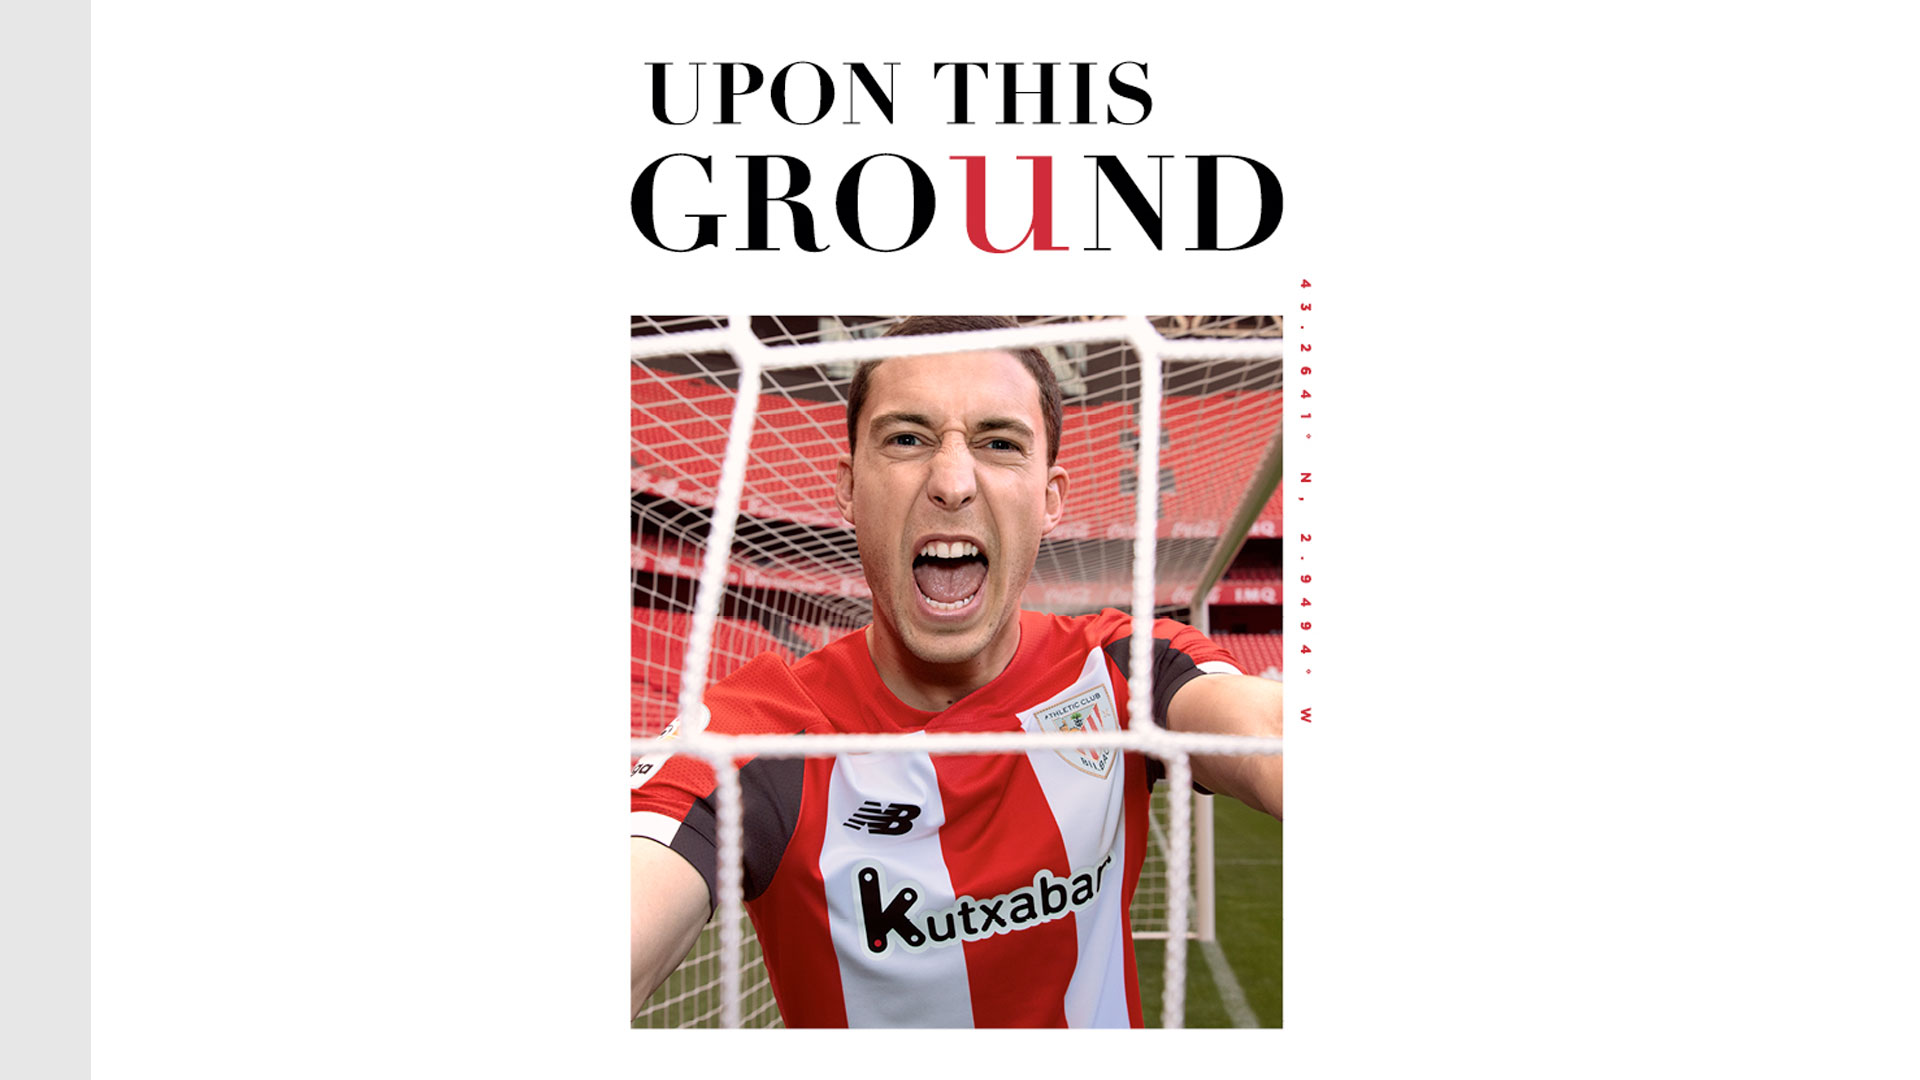 Nouveaux maillots 19/20 : Upon This Ground